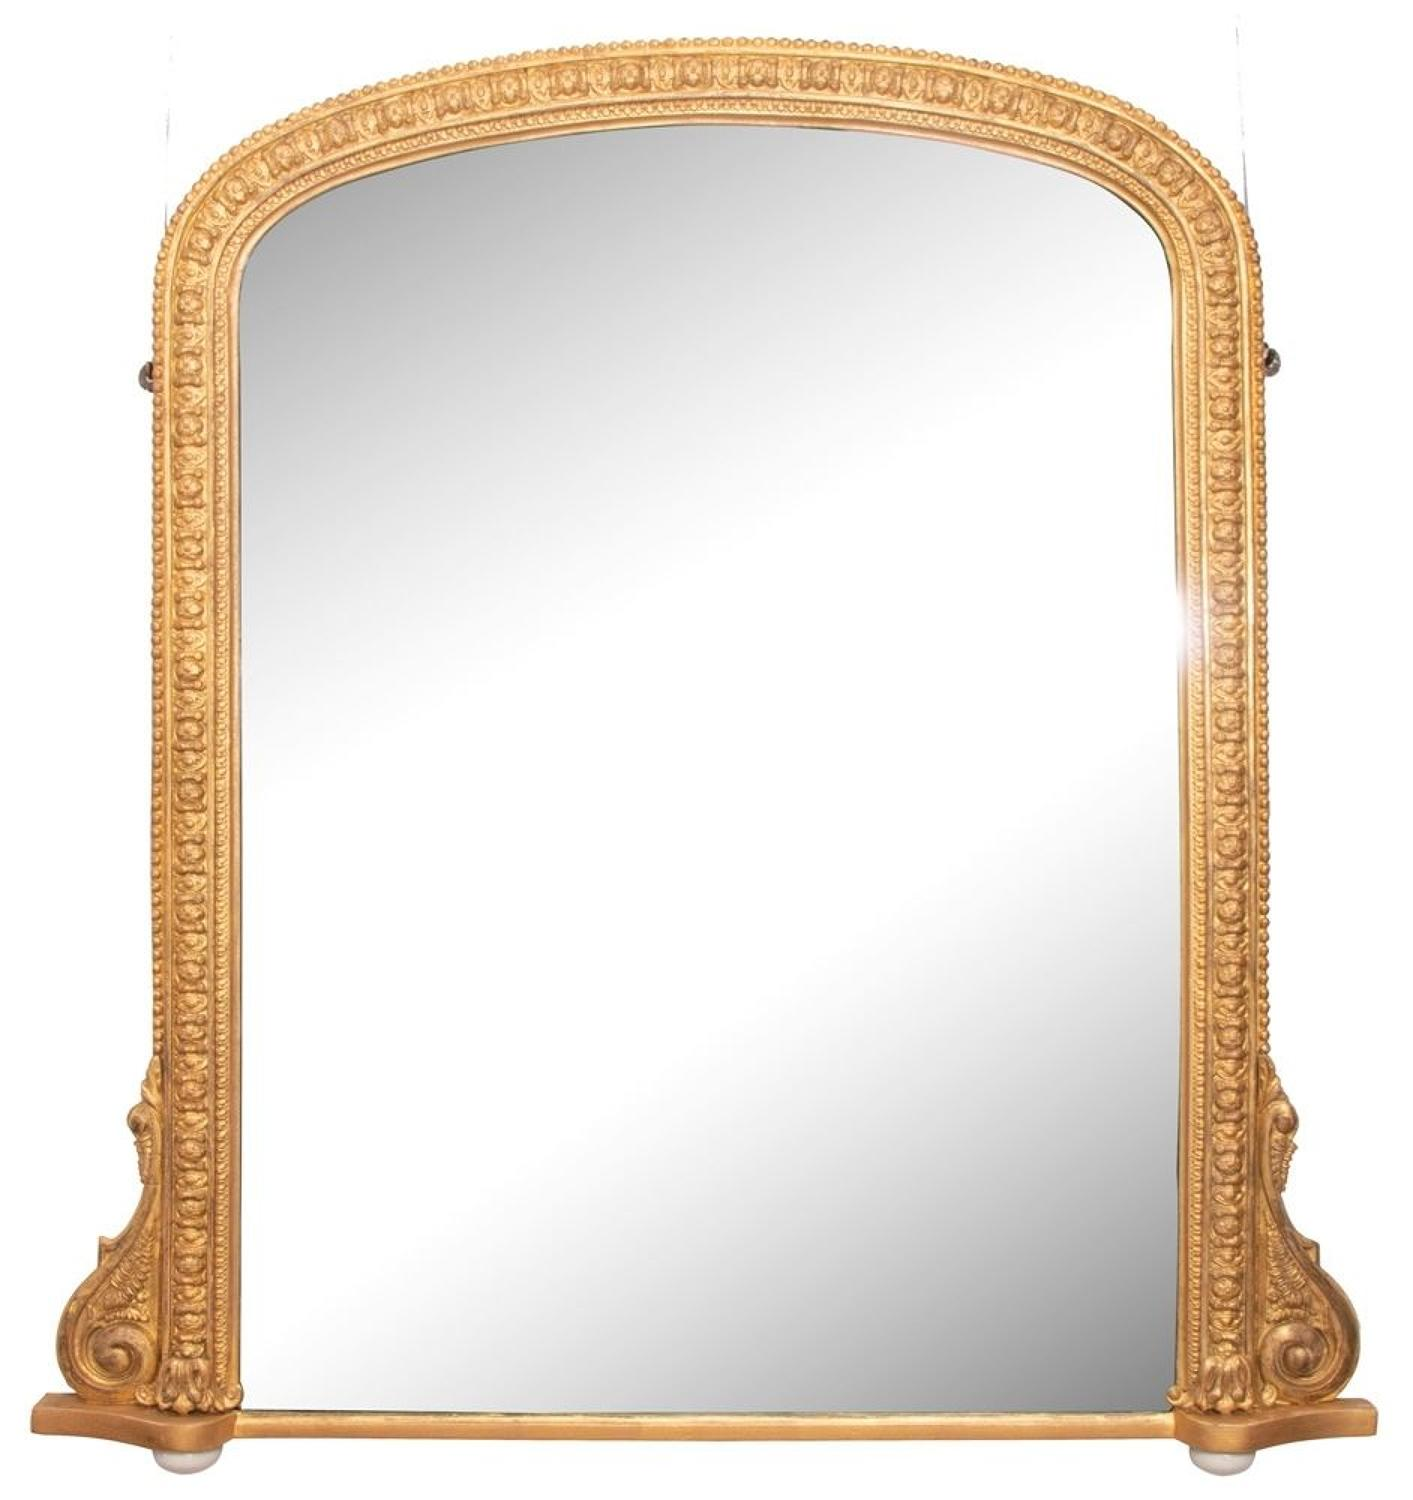 Antique Giltwood Overmantle Mirror c.1880